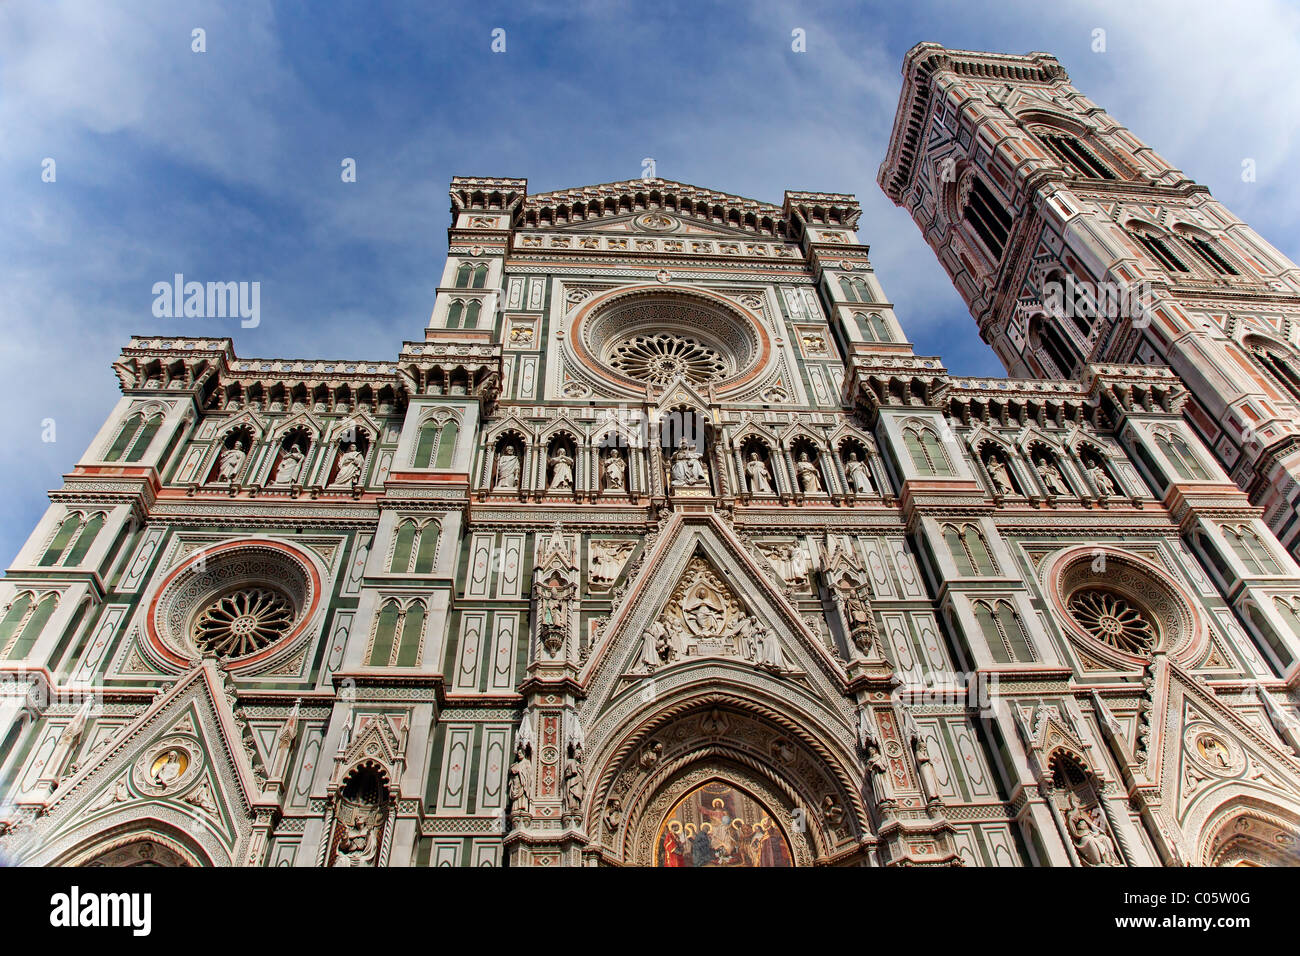 Duomo Facade Statues Frescos Cathedral Church Giotto's Bell Tower, Florence Italy - Stock Image